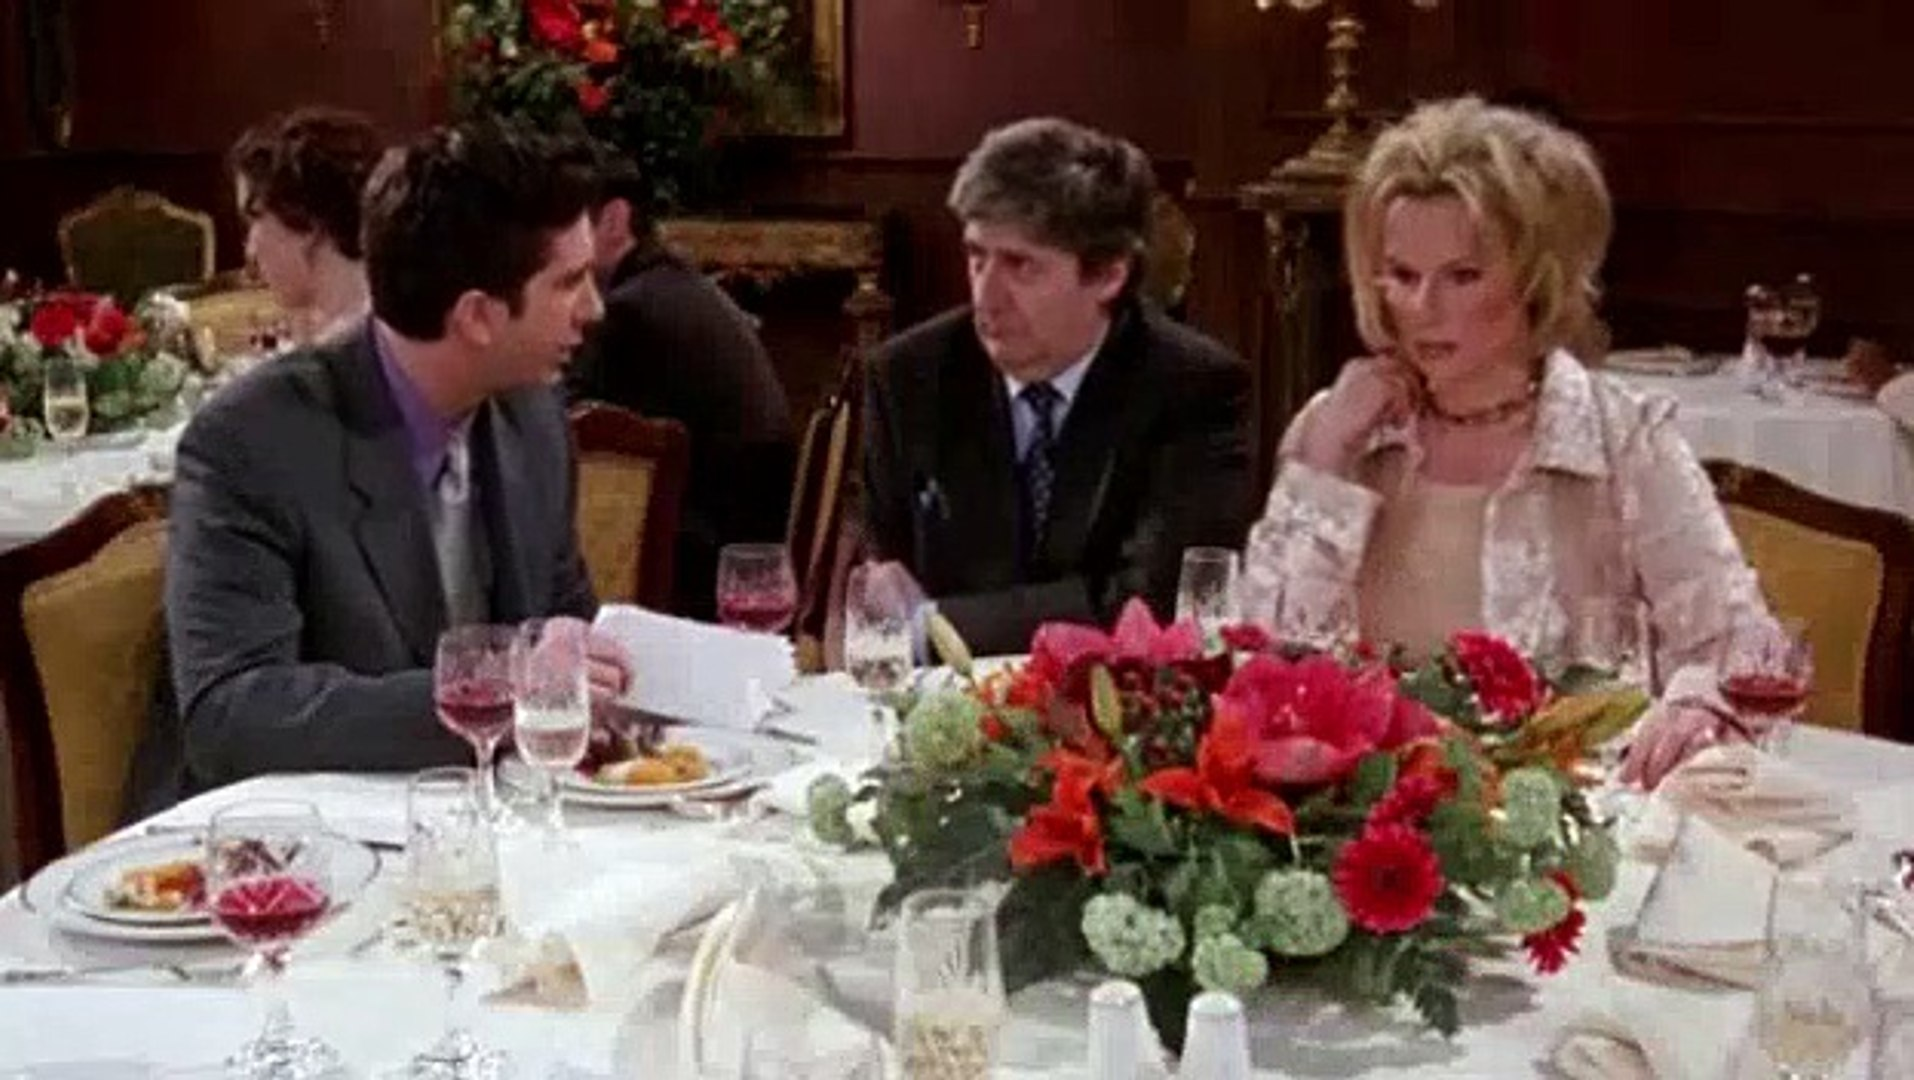 Friends S04E24 The One with Ross's Wedding Pt 2